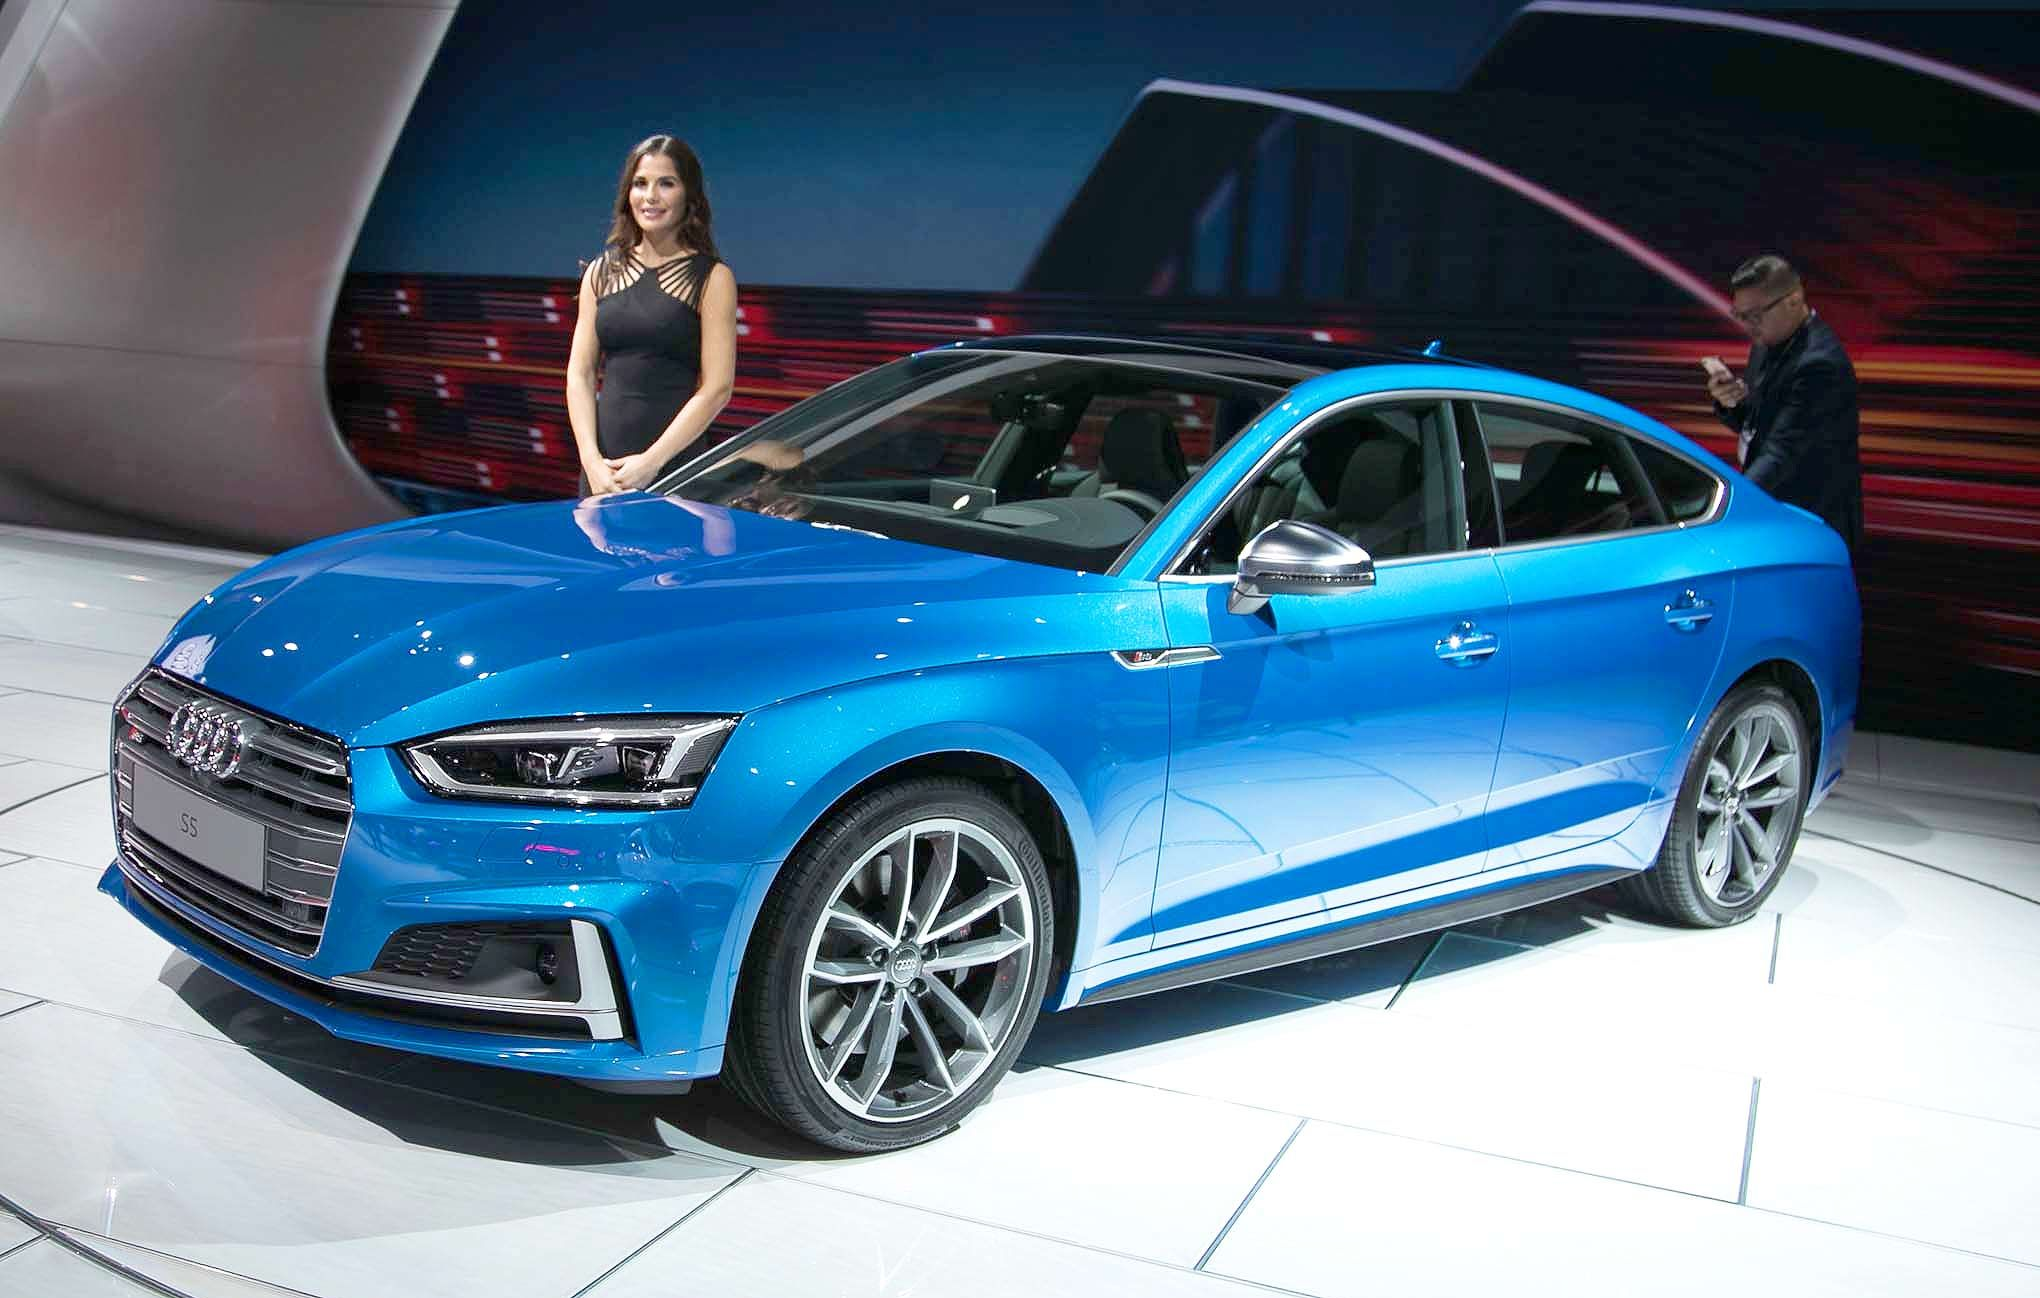 2019 Audi S5 Changes Performance And Price Audi S5 Audi S5 Sportback Audi A5